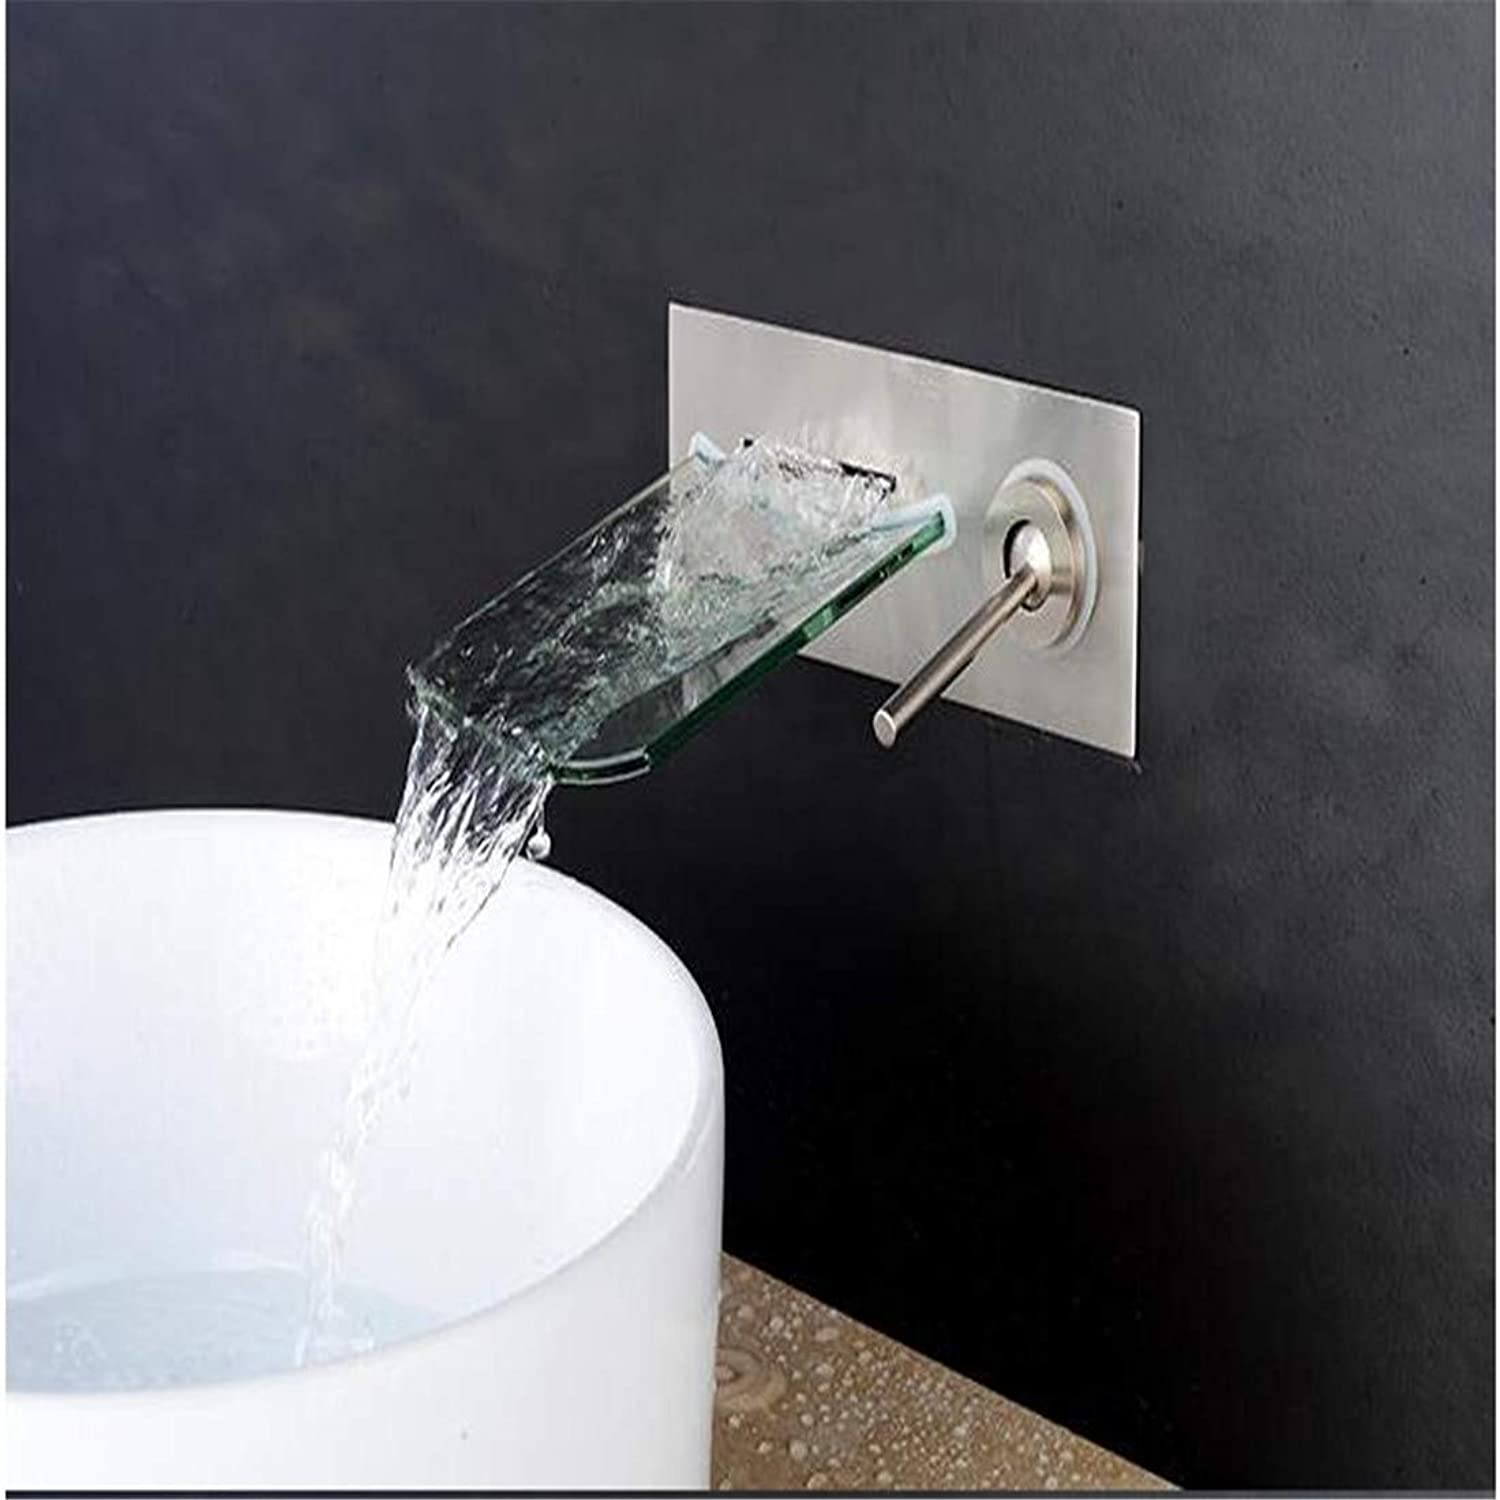 Retro Hot and Cold Faucet Retrobathtub Shower Faucets Faucet Waterfall Wall Shower Mixer Bathroom Bath Tap